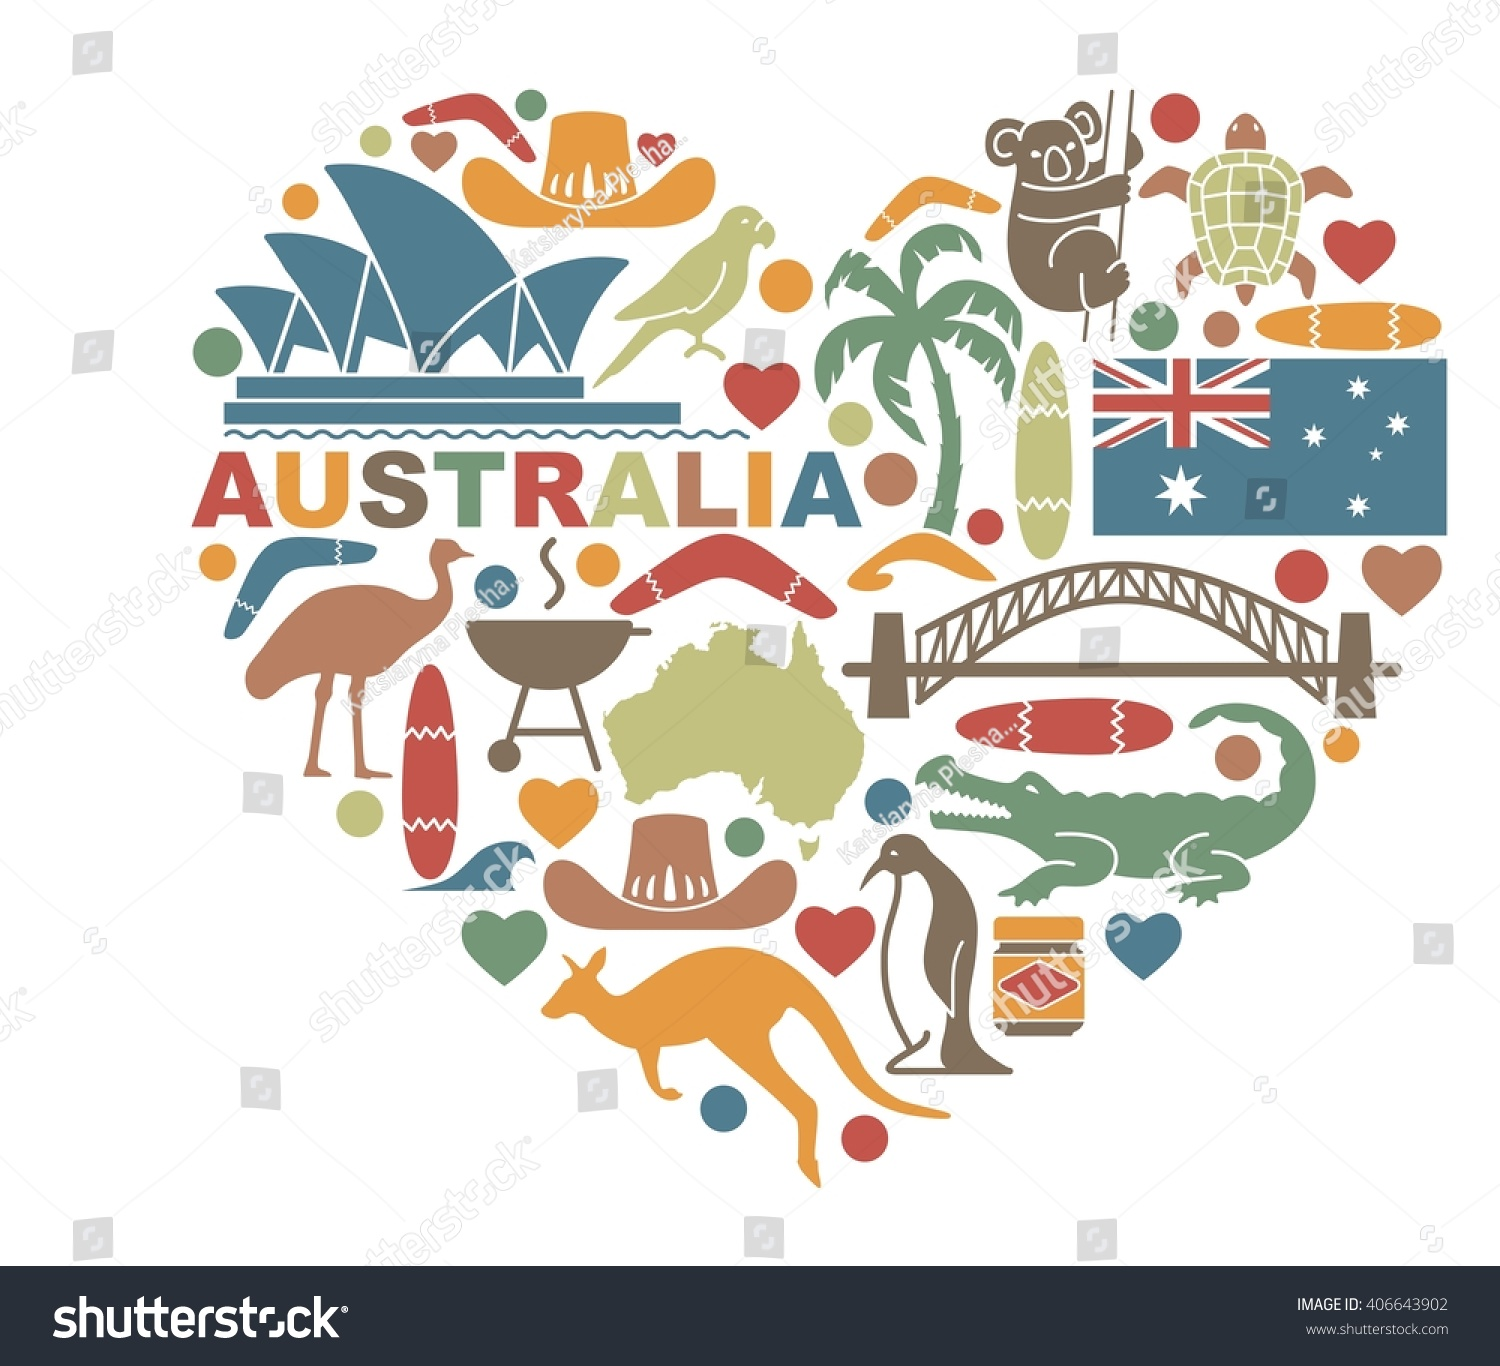 Making australia home design lessons tes teach royalty free traditional symbols of nature and 406643902 stock biocorpaavc Choice Image